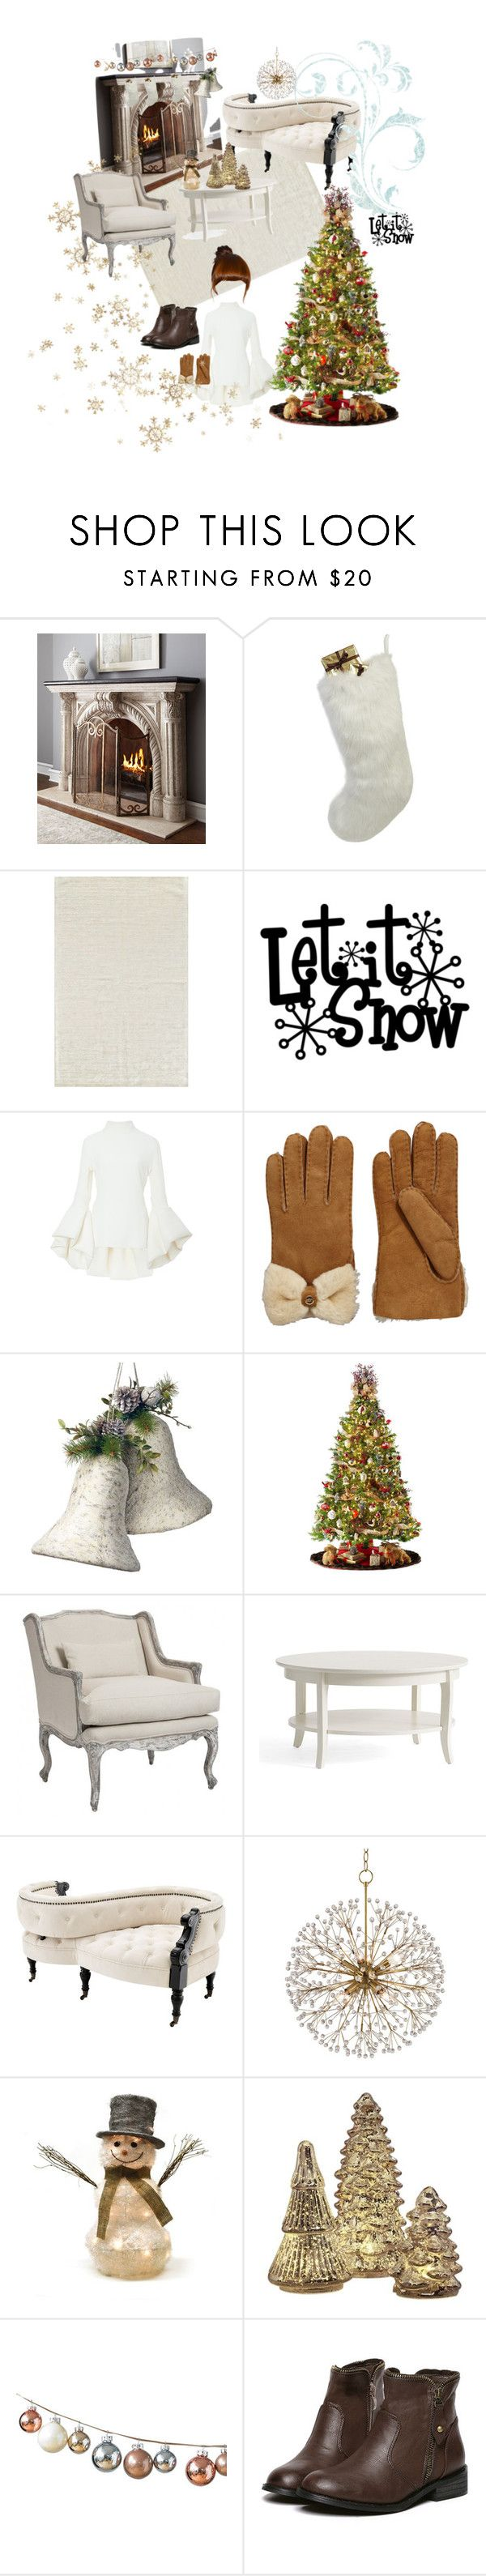 """""""Getting ready for the snow"""" by maryann-bunt-deile ❤ liked on Polyvore featuring Neiman Marcus, Helen Moore, Brandon Maxwell, UGG, National Tree Company, General Foam, Aidan Gray, Eichholtz, Hudson Valley Lighting and Shea's Wildflower"""